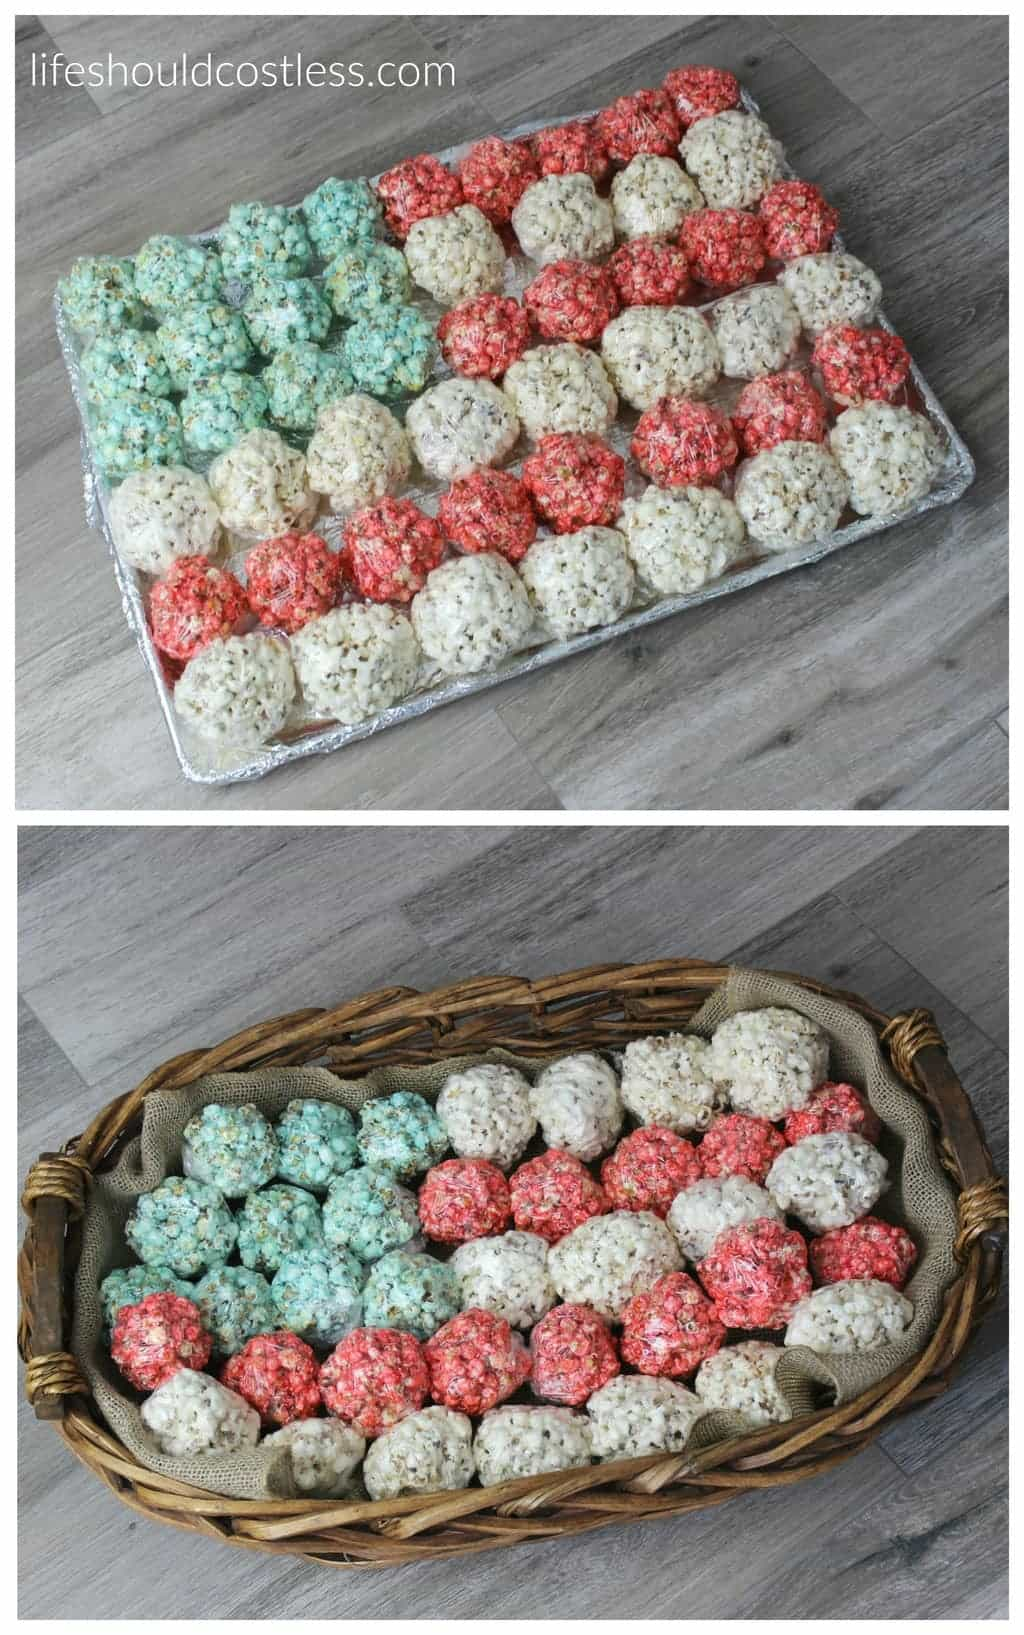 Patriotic Flag Popcorn Balls in pan or basket. #summertime #patriotic #dessert {lifeshouldcostless.com}